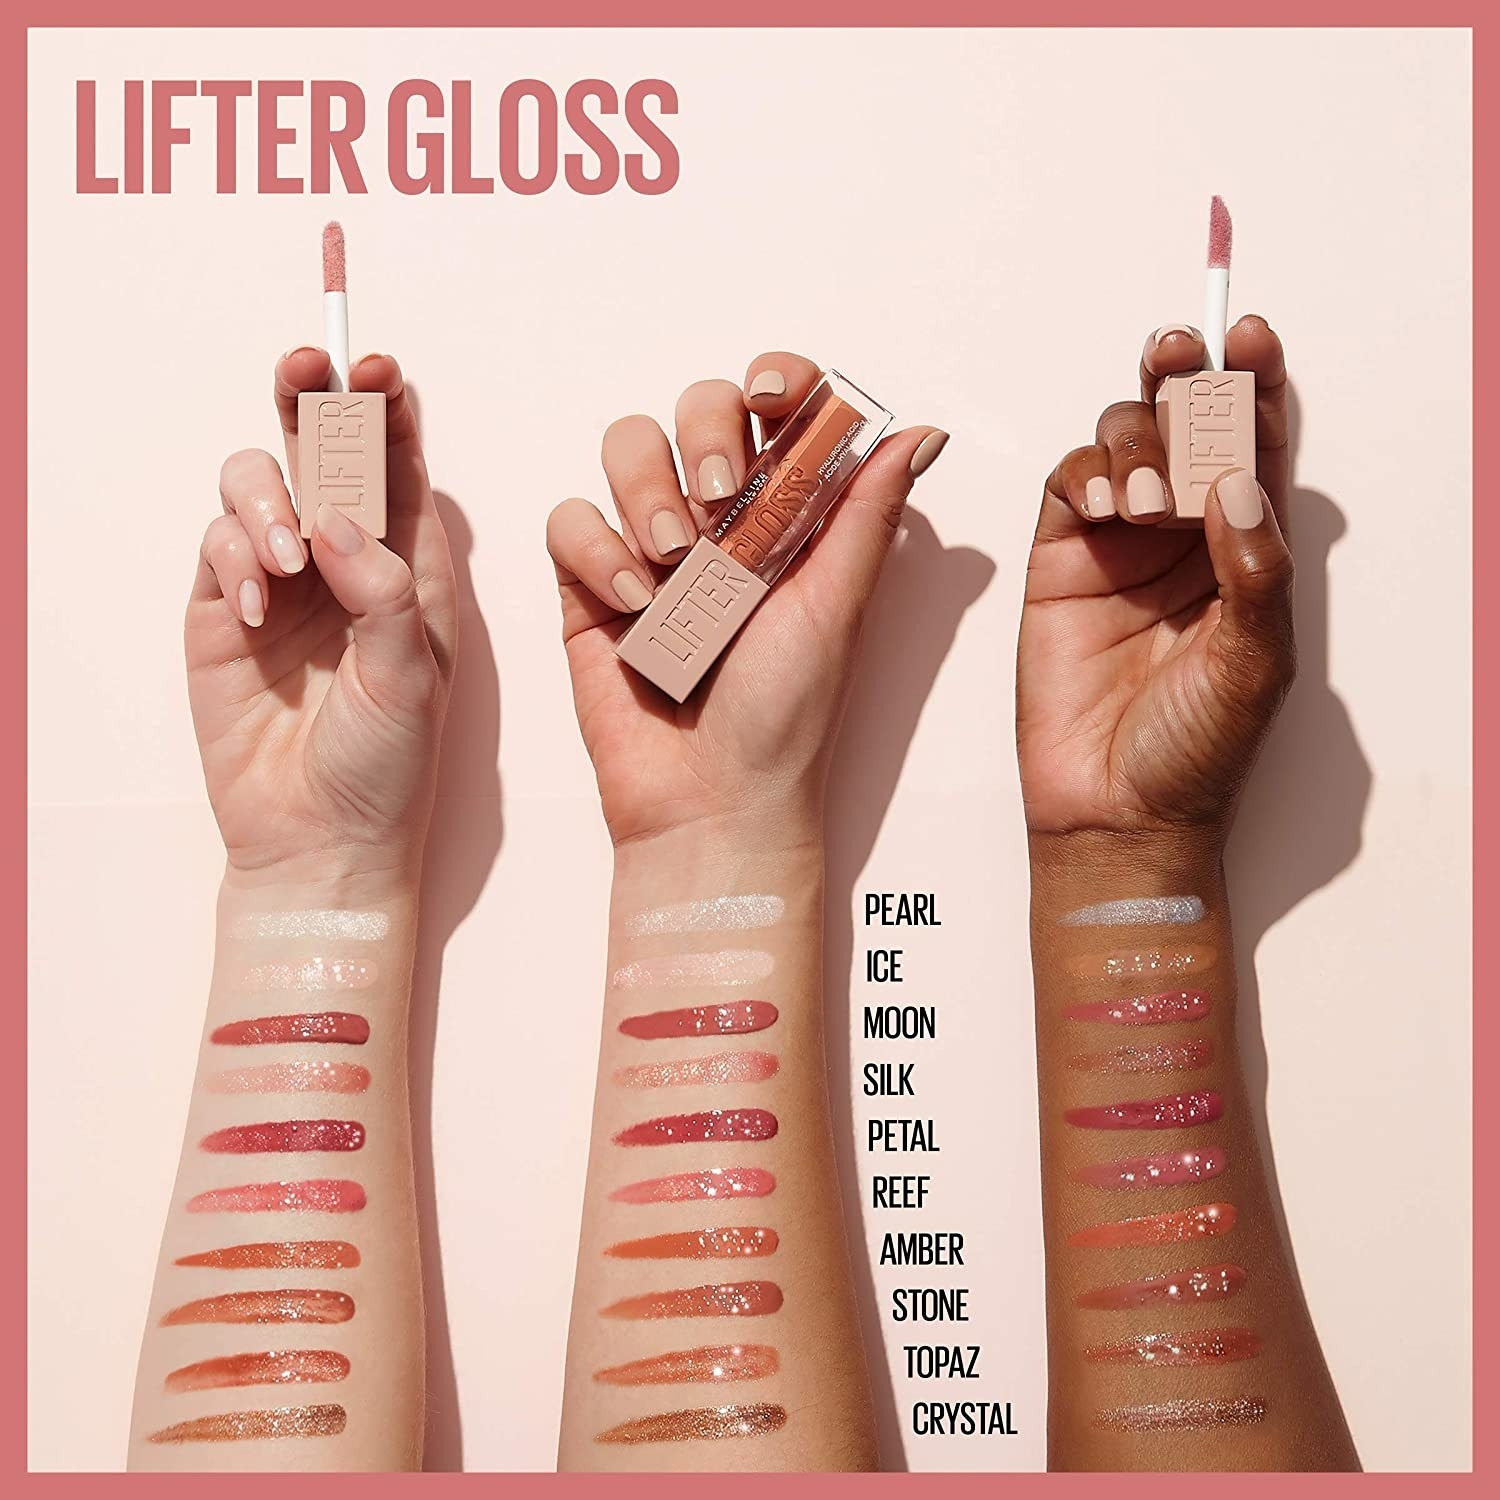 Swatches of the gloss shades on three arms with different skin tones